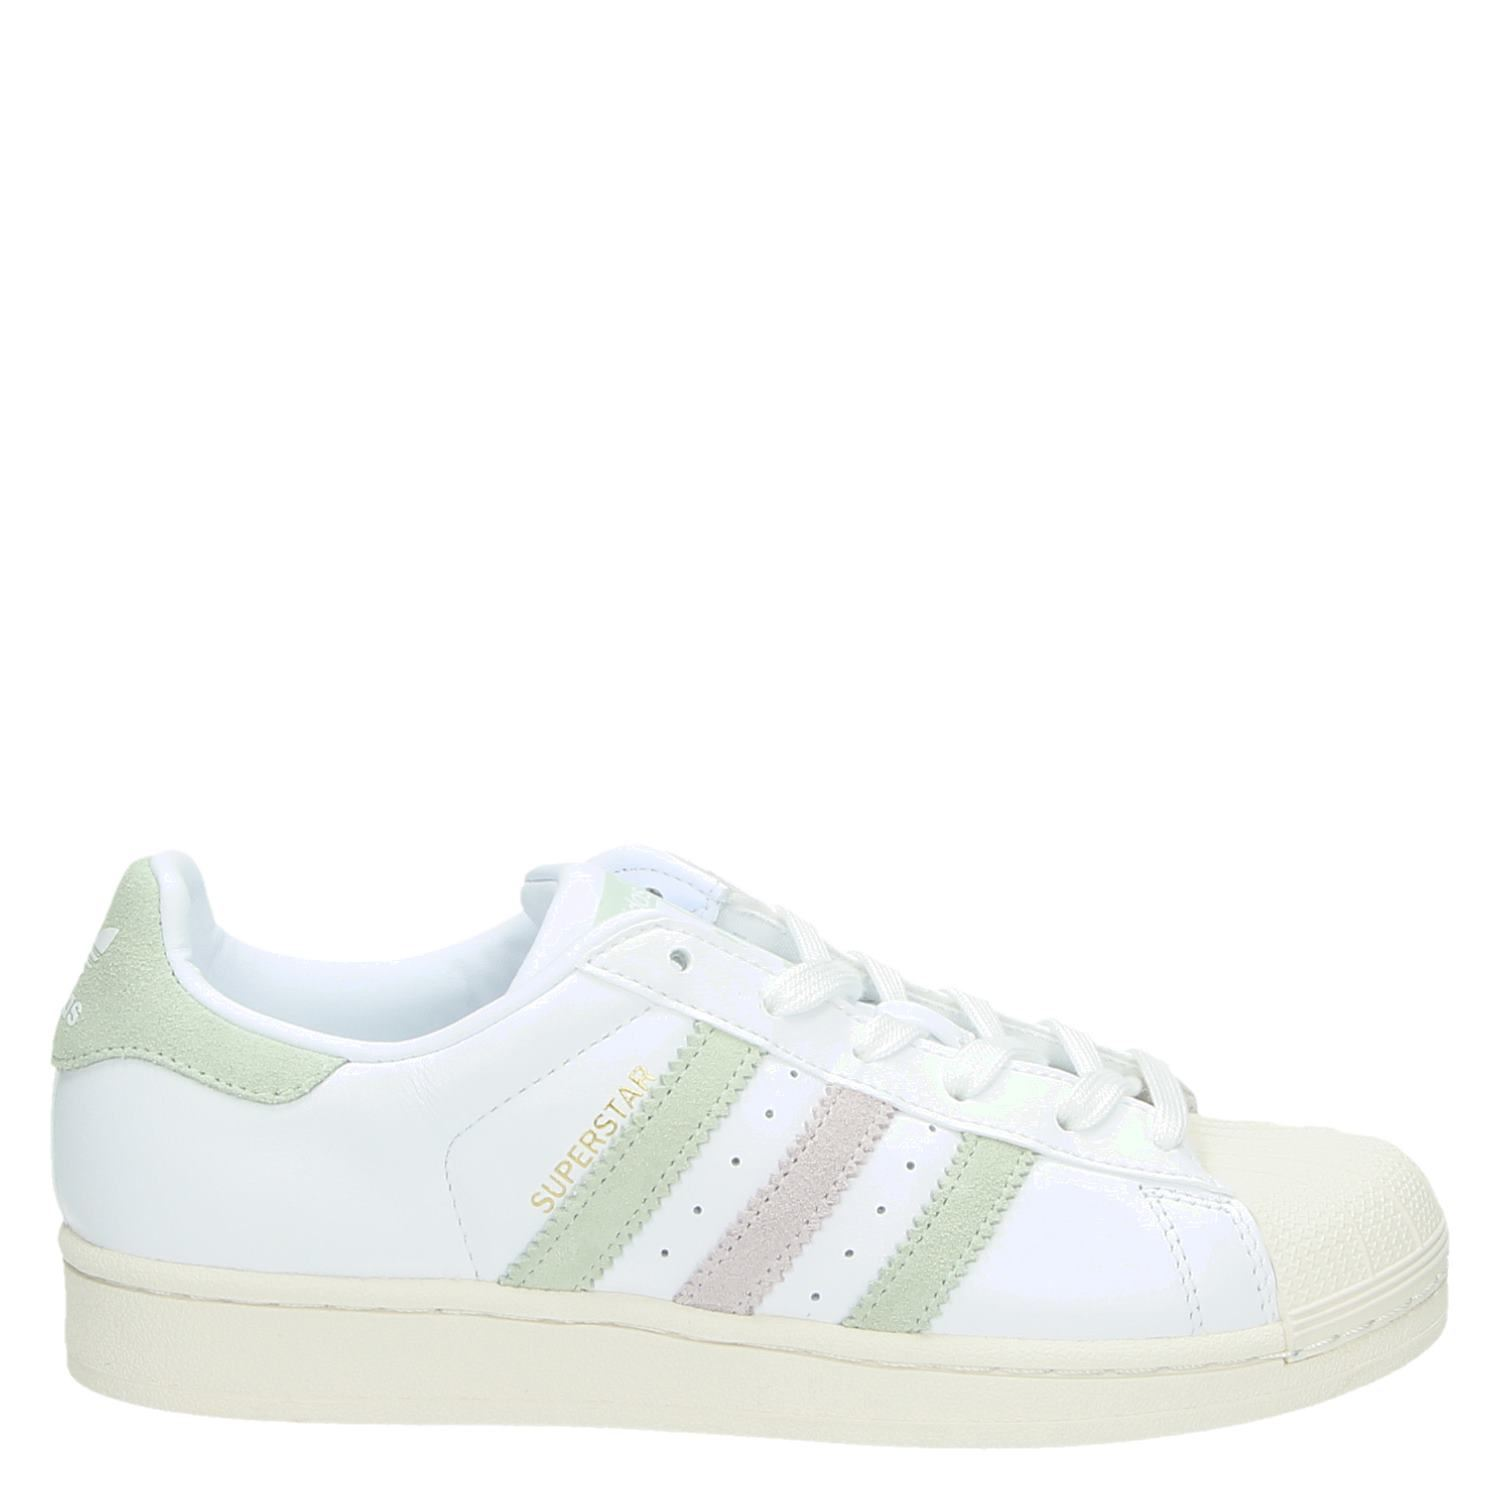 816932e3a22 Adidas Superstar dames sneakers wit